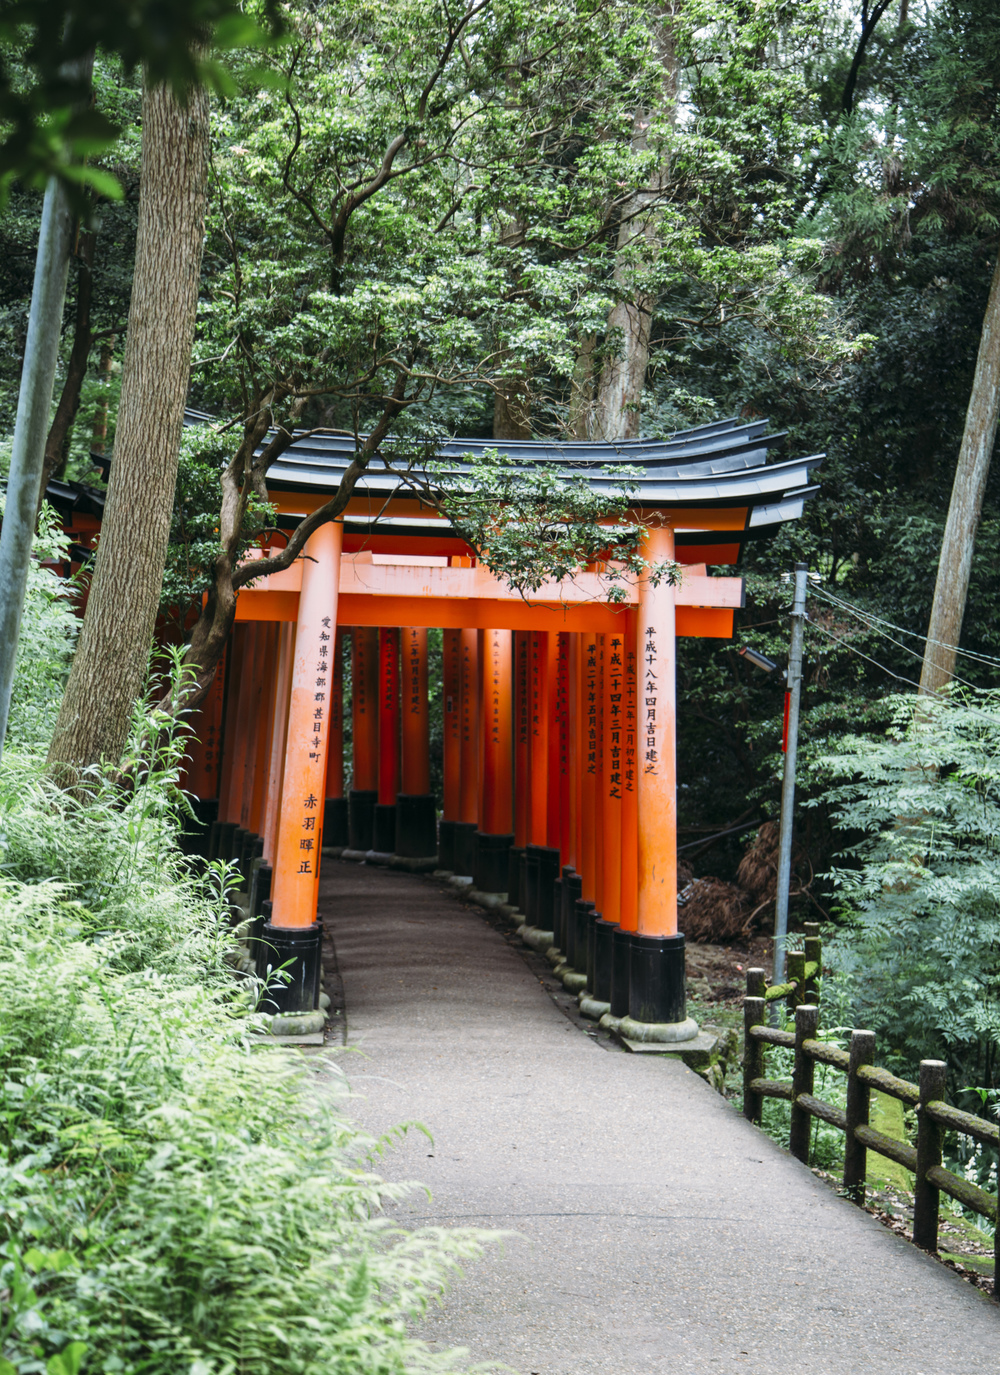 A Sea Of Orange: Exploring The Fushimi Inari Torii Gates